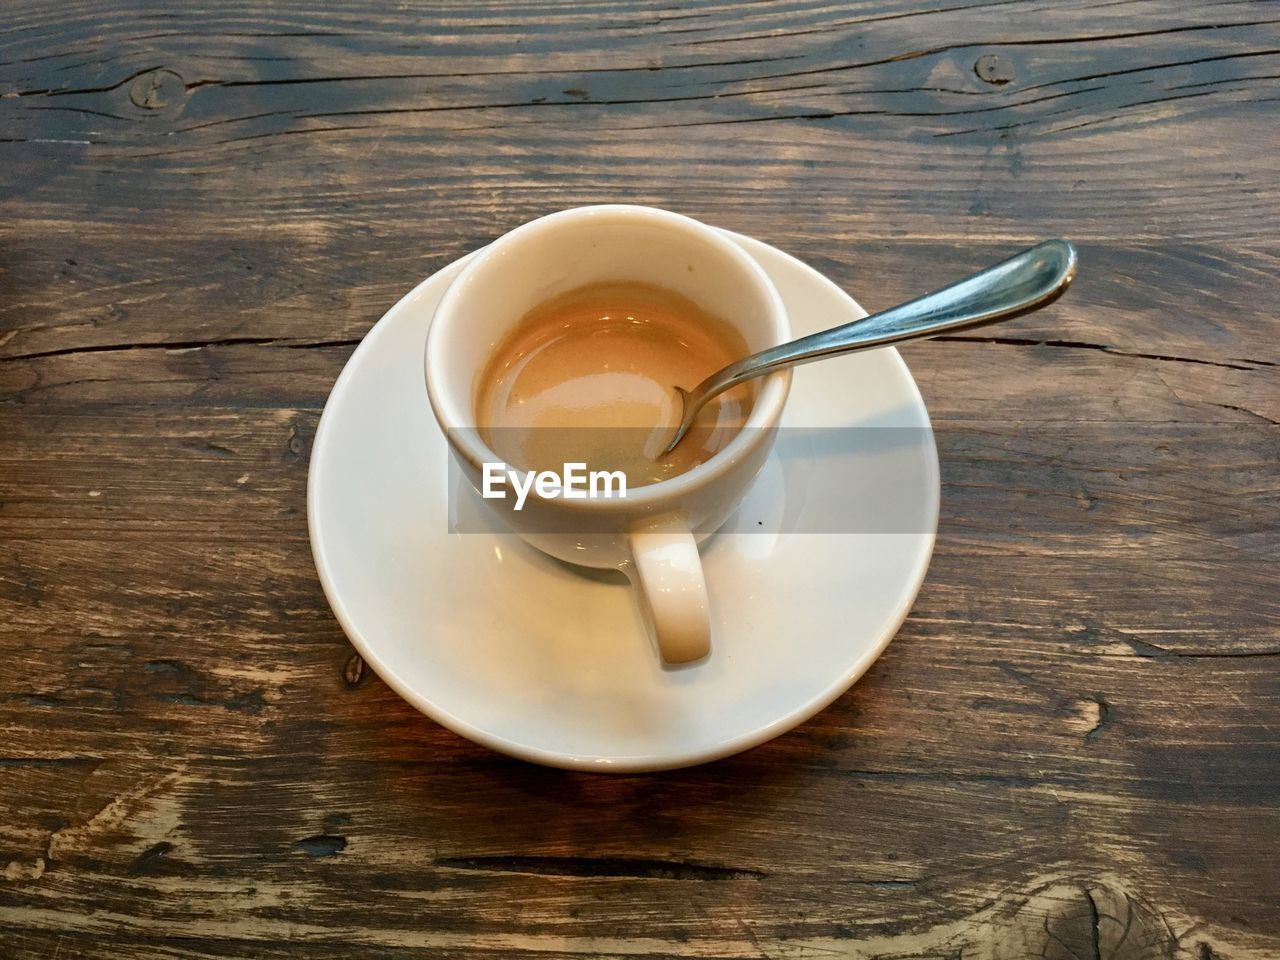 drink, table, refreshment, food and drink, cup, coffee, spoon, coffee - drink, wood - material, mug, kitchen utensil, saucer, coffee cup, eating utensil, crockery, still life, high angle view, freshness, no people, indoors, tea cup, wood grain, non-alcoholic beverage, teaspoon